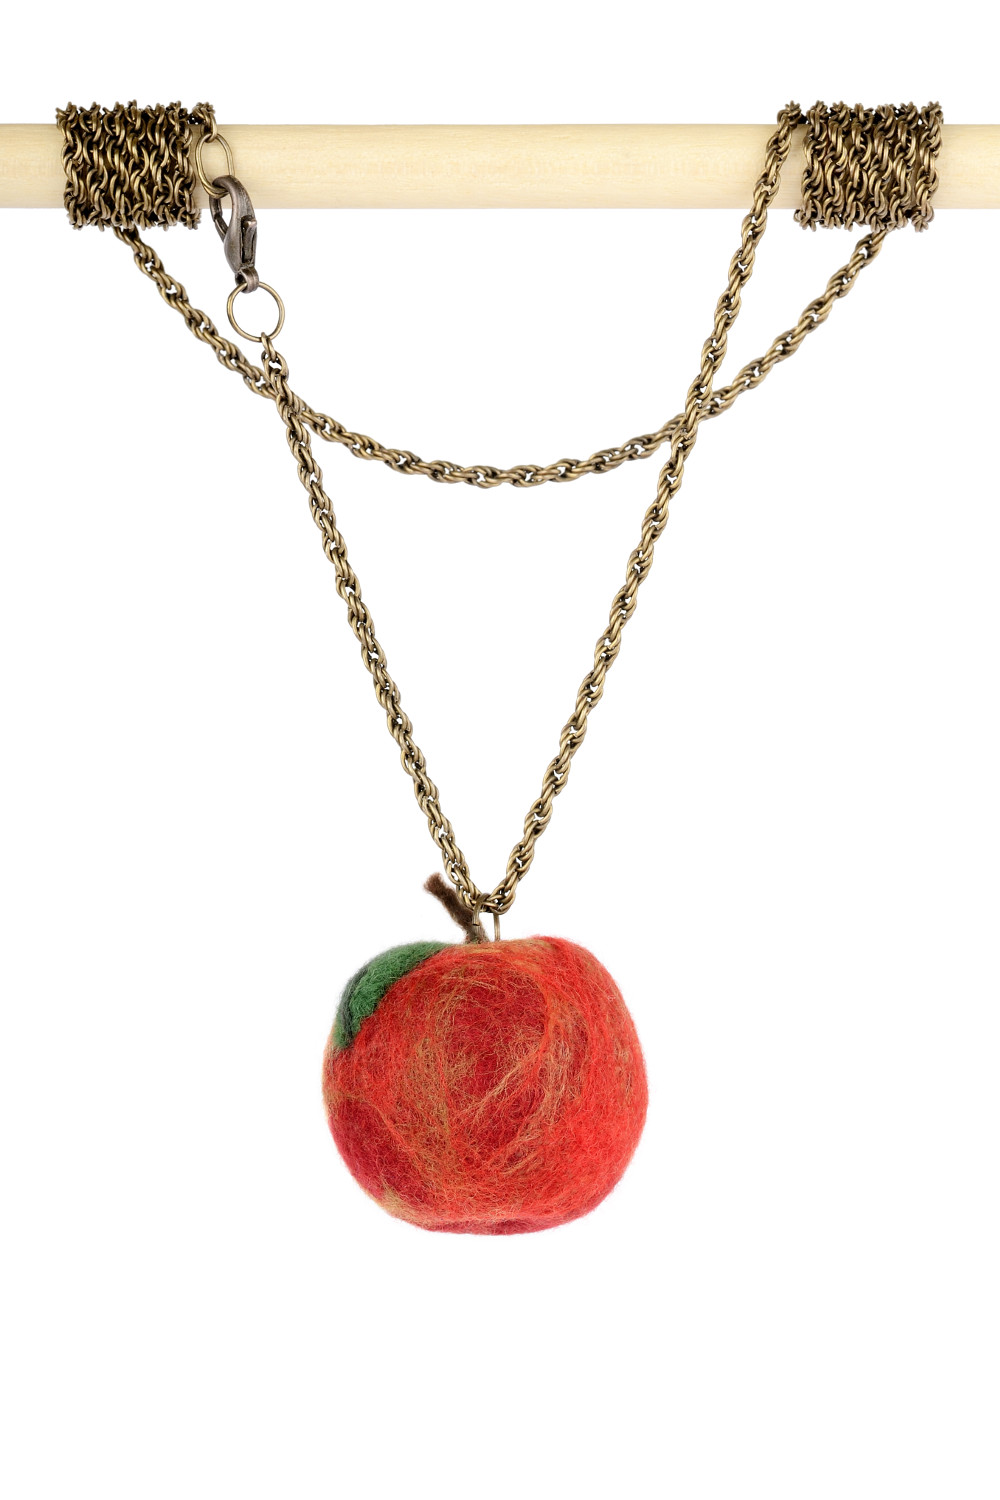 Red apple pendant on a chain once upon a time jewelry red apple pendant on a chain mozeypictures Image collections